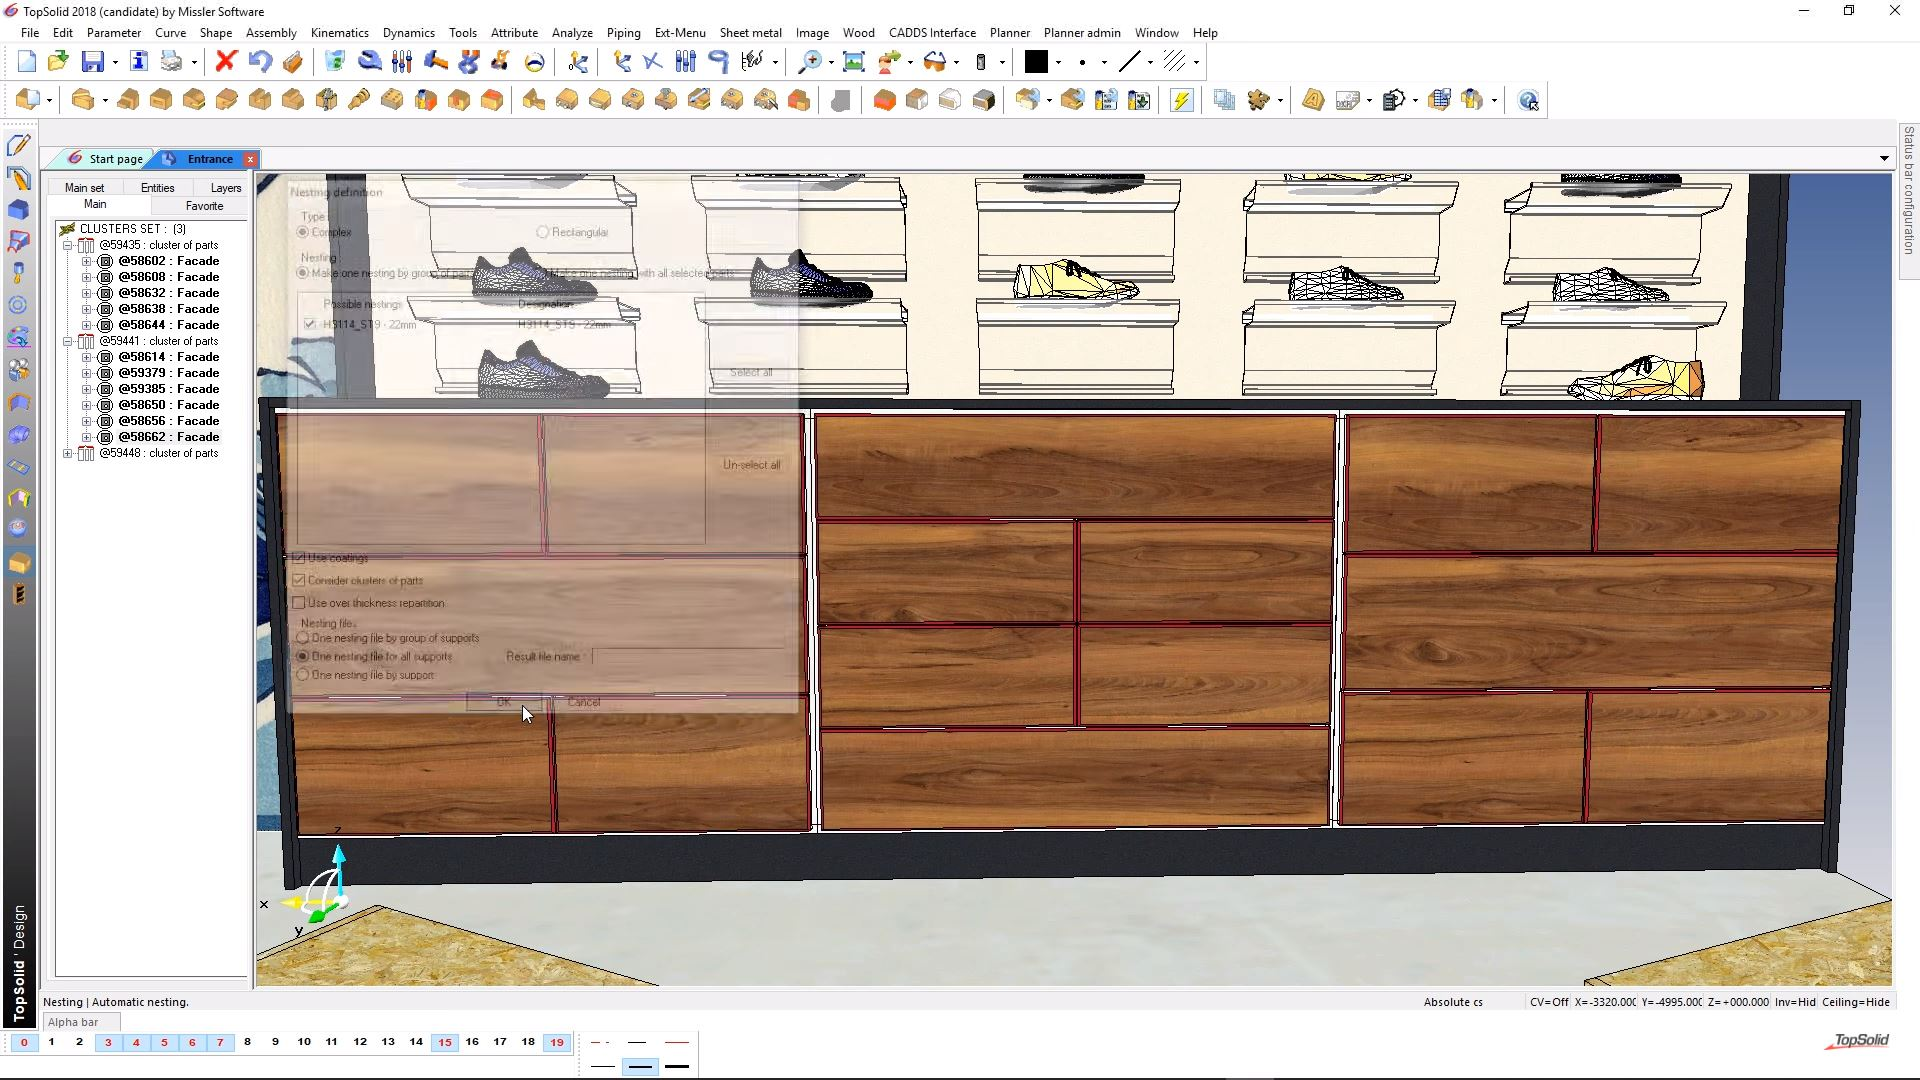 Working with topsolid 2018 full license